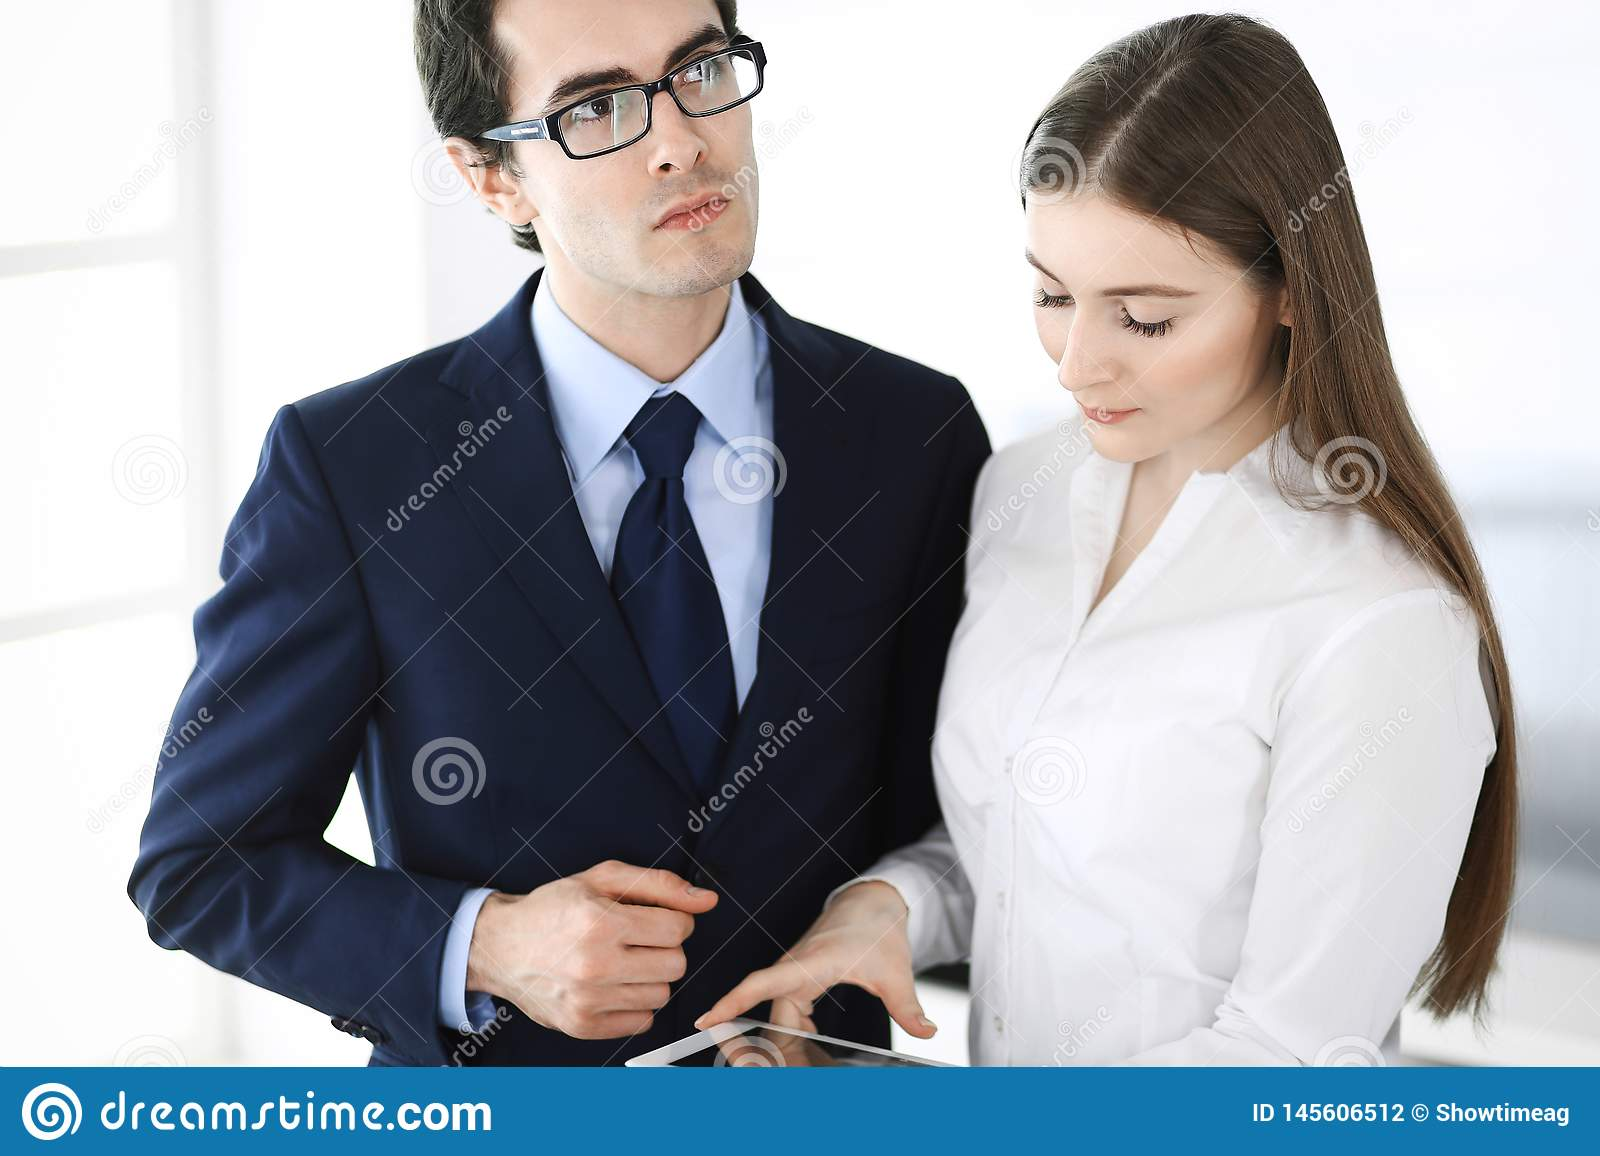 Businessmen and woman using tablet computer in modern office. Colleagues or company managers at workplace. Partners